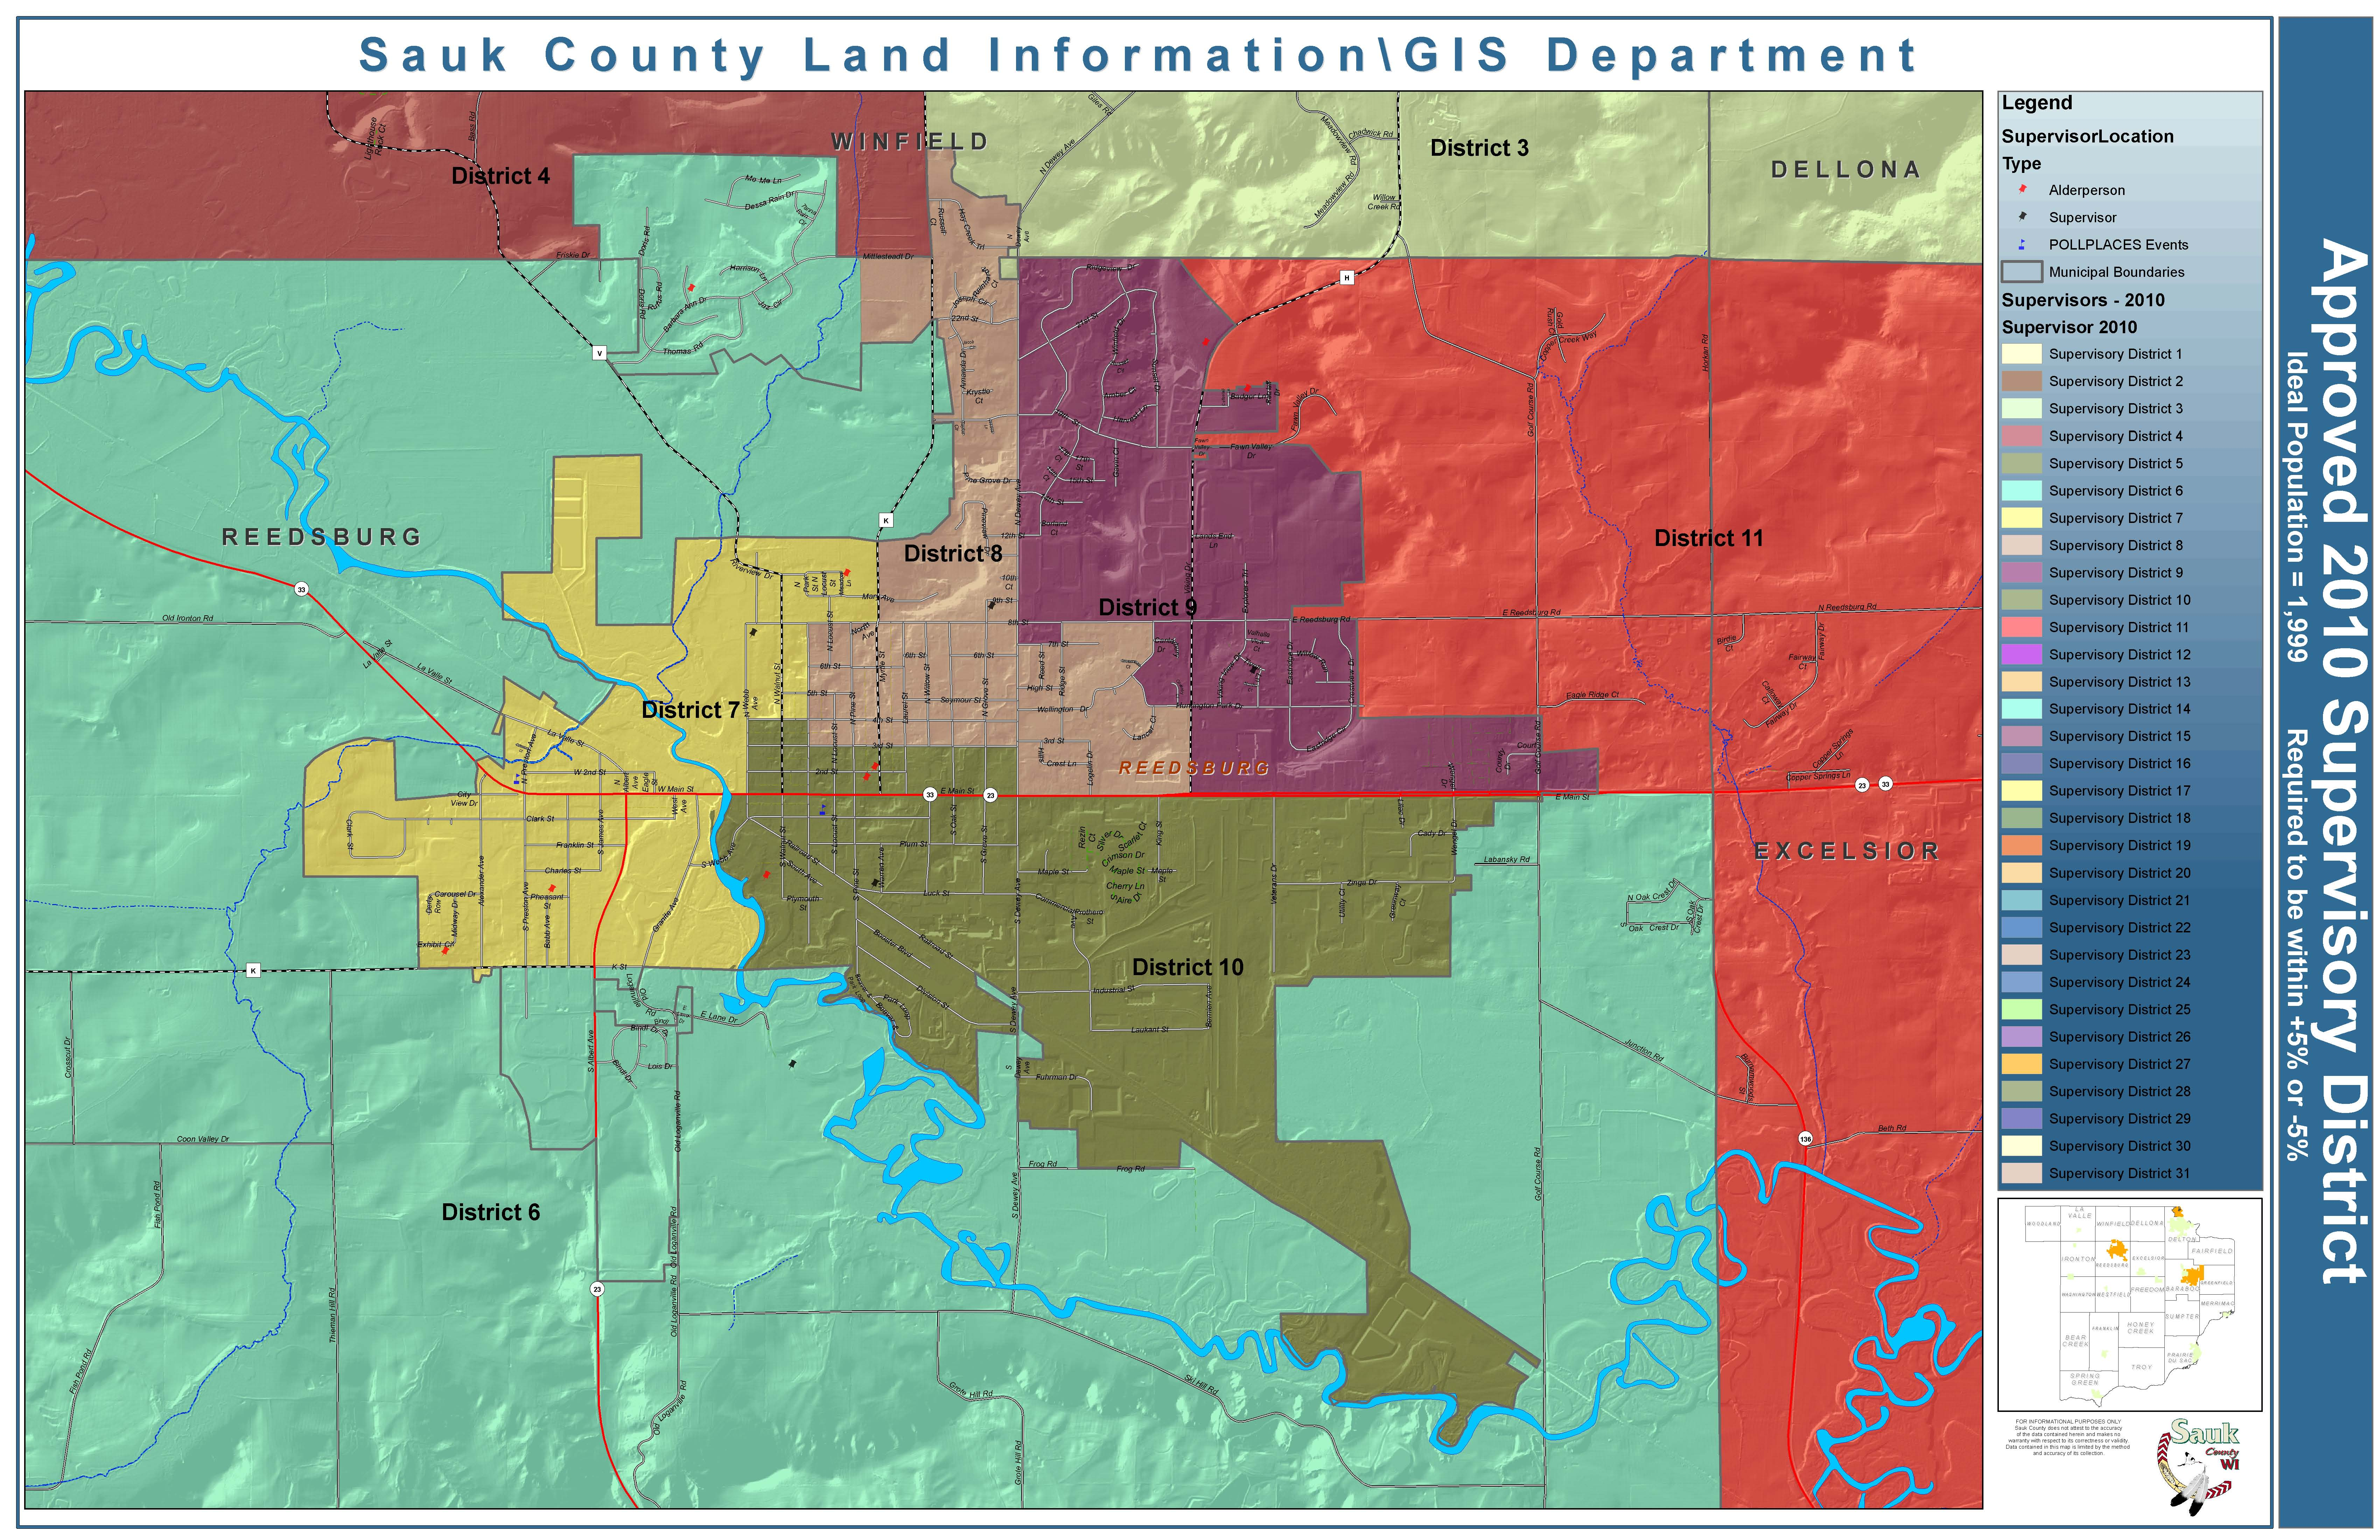 County Supervisory Districts Sauk County Wisconsin Official Website - Detailed map of wisconsin